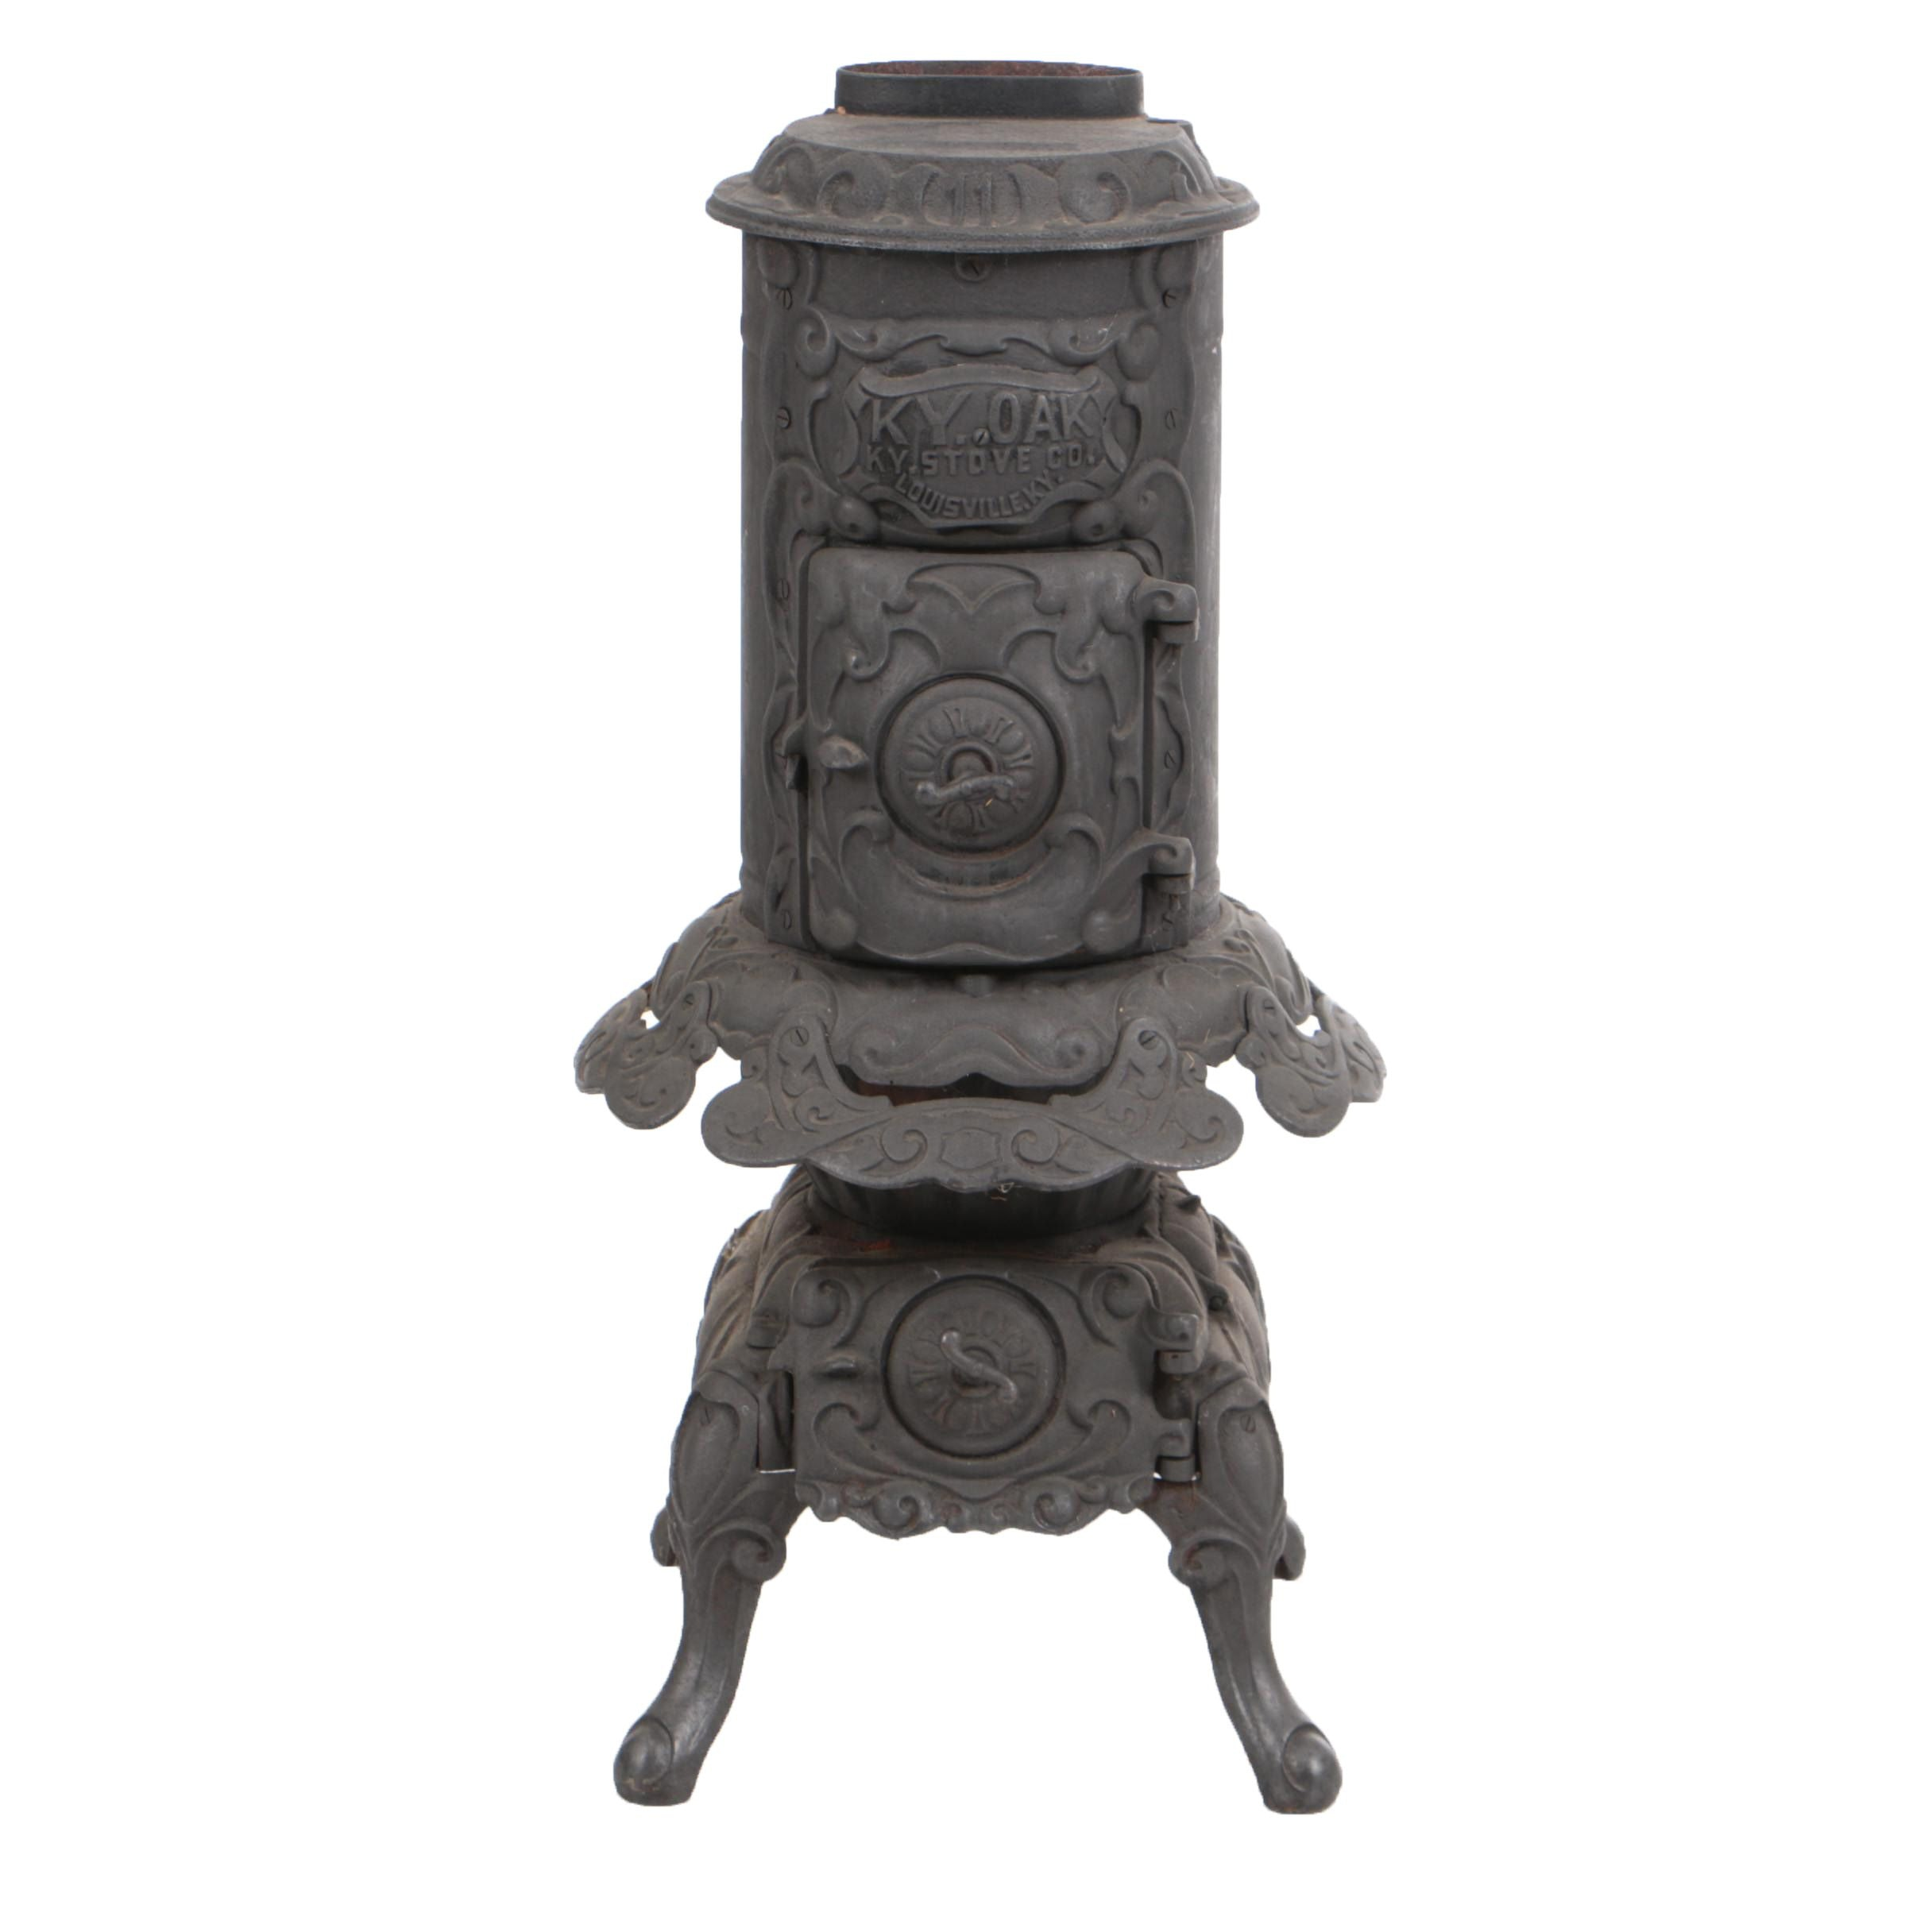 "Antique ""KY. Oak"" Cast Iron Stove by KY. Stove Co."